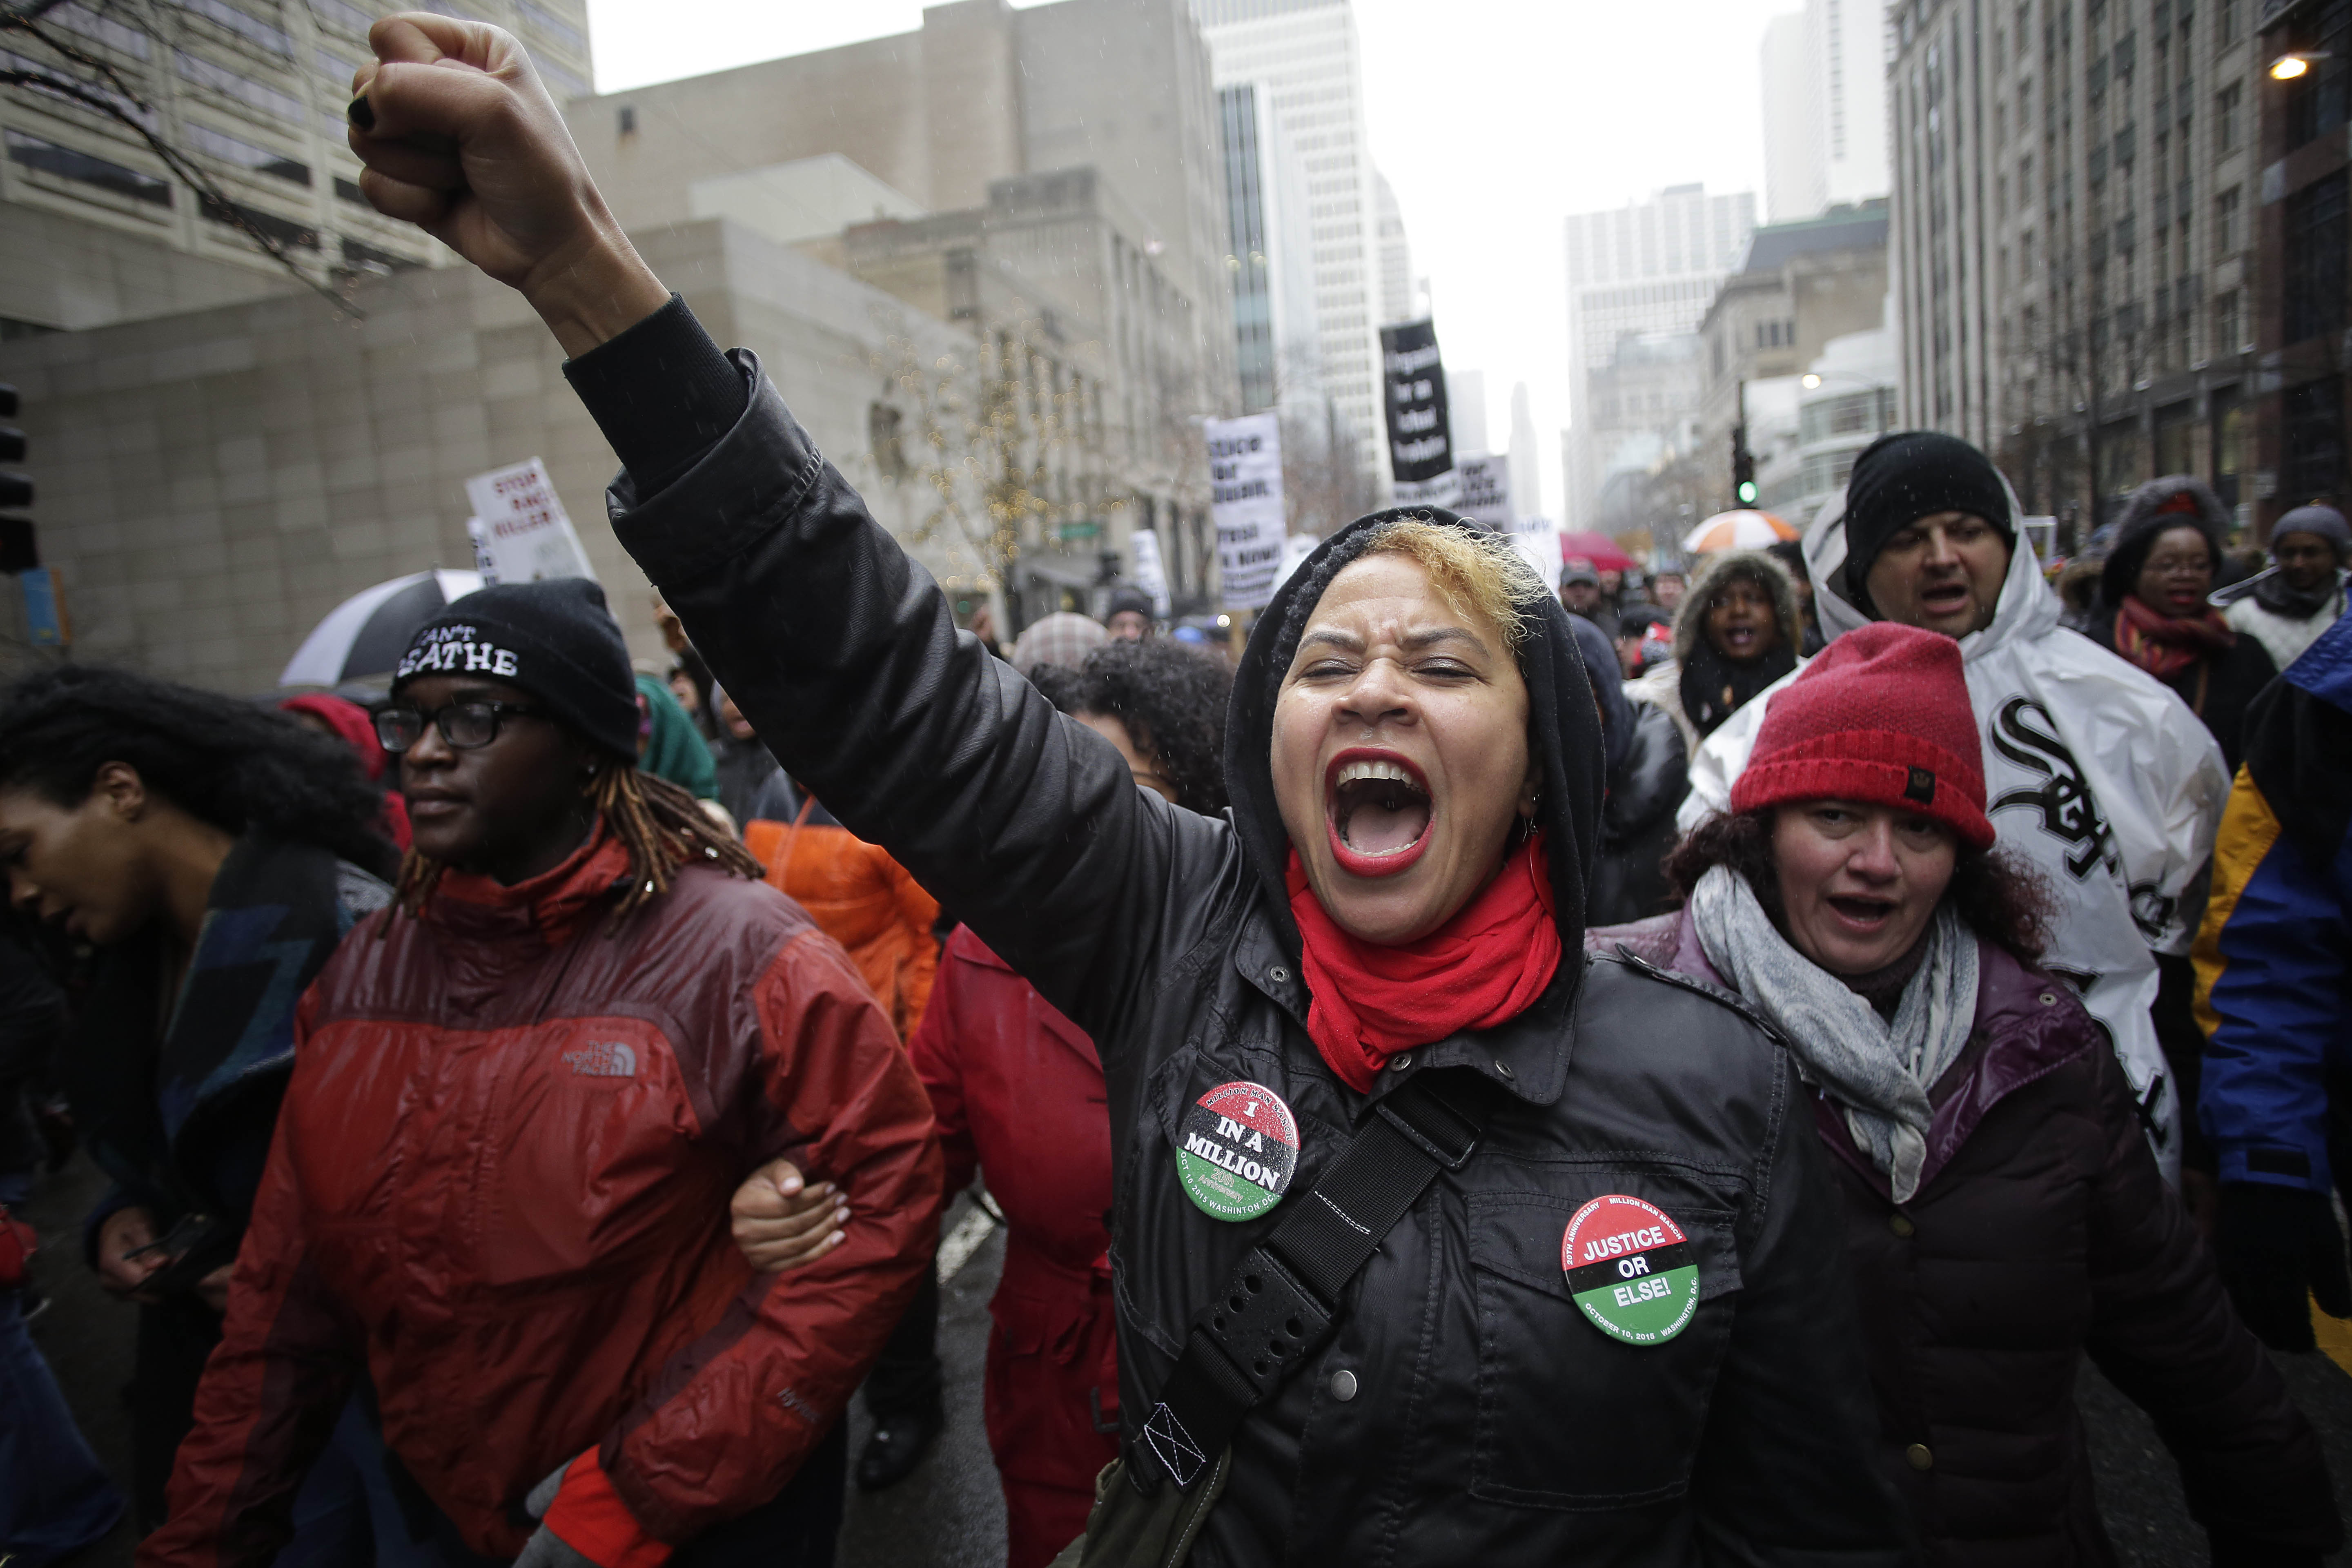 CHICAGO, IL - NOVEMBER 27: Demonstrators protest the shooting of Laquan McDonald along the Magnificent Mile November 27, 2015 in Chicago, Illinois. Chicago police officer Jason Van Dyke was charged Tuesday with first degree murder for fatally shooting 17-year-old McDonald 16 times last year on the southwest side of Chicago after Van Dyke was responding to a call of a knife wielding man. The dash-cam video of officer Van Dyke shooting McDonald was released by the Chicago Police department earlier this week after a judge denied Van Dyke bail during his bond hearing at Leighton Criminal Court. (Photo by Joshua Lott/Getty Images)